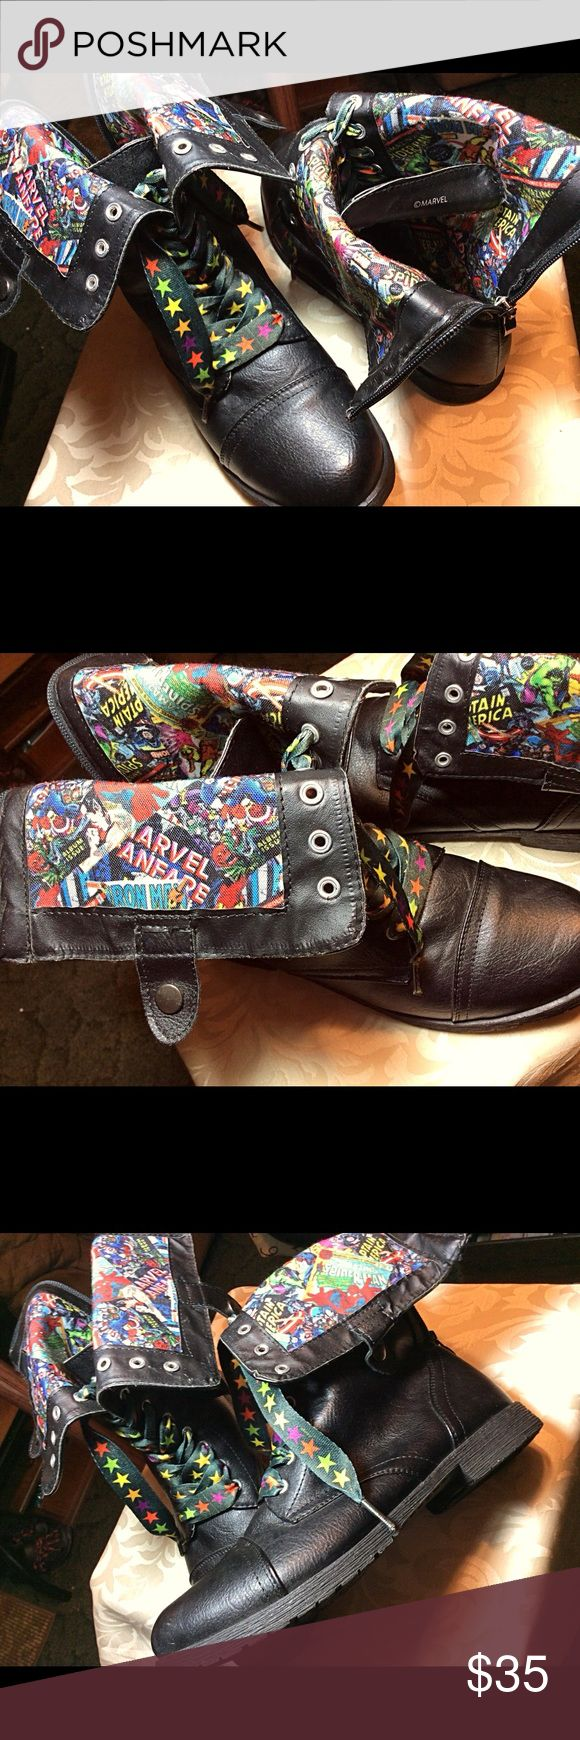 LIKE NEW!  Marvel Comics Snap-Down Zip-Back Boots Marvel Comics Heroes  Snap-Down,  Zip-Back,  Black Combat Boots.  Man Made Materials.  Cartoon Cloth Interiors.  Wide Star Laces.  Worn once and in like new excellent condition.  (See matching Skater Skirt listing) Marvel Shoes Lace Up Boots